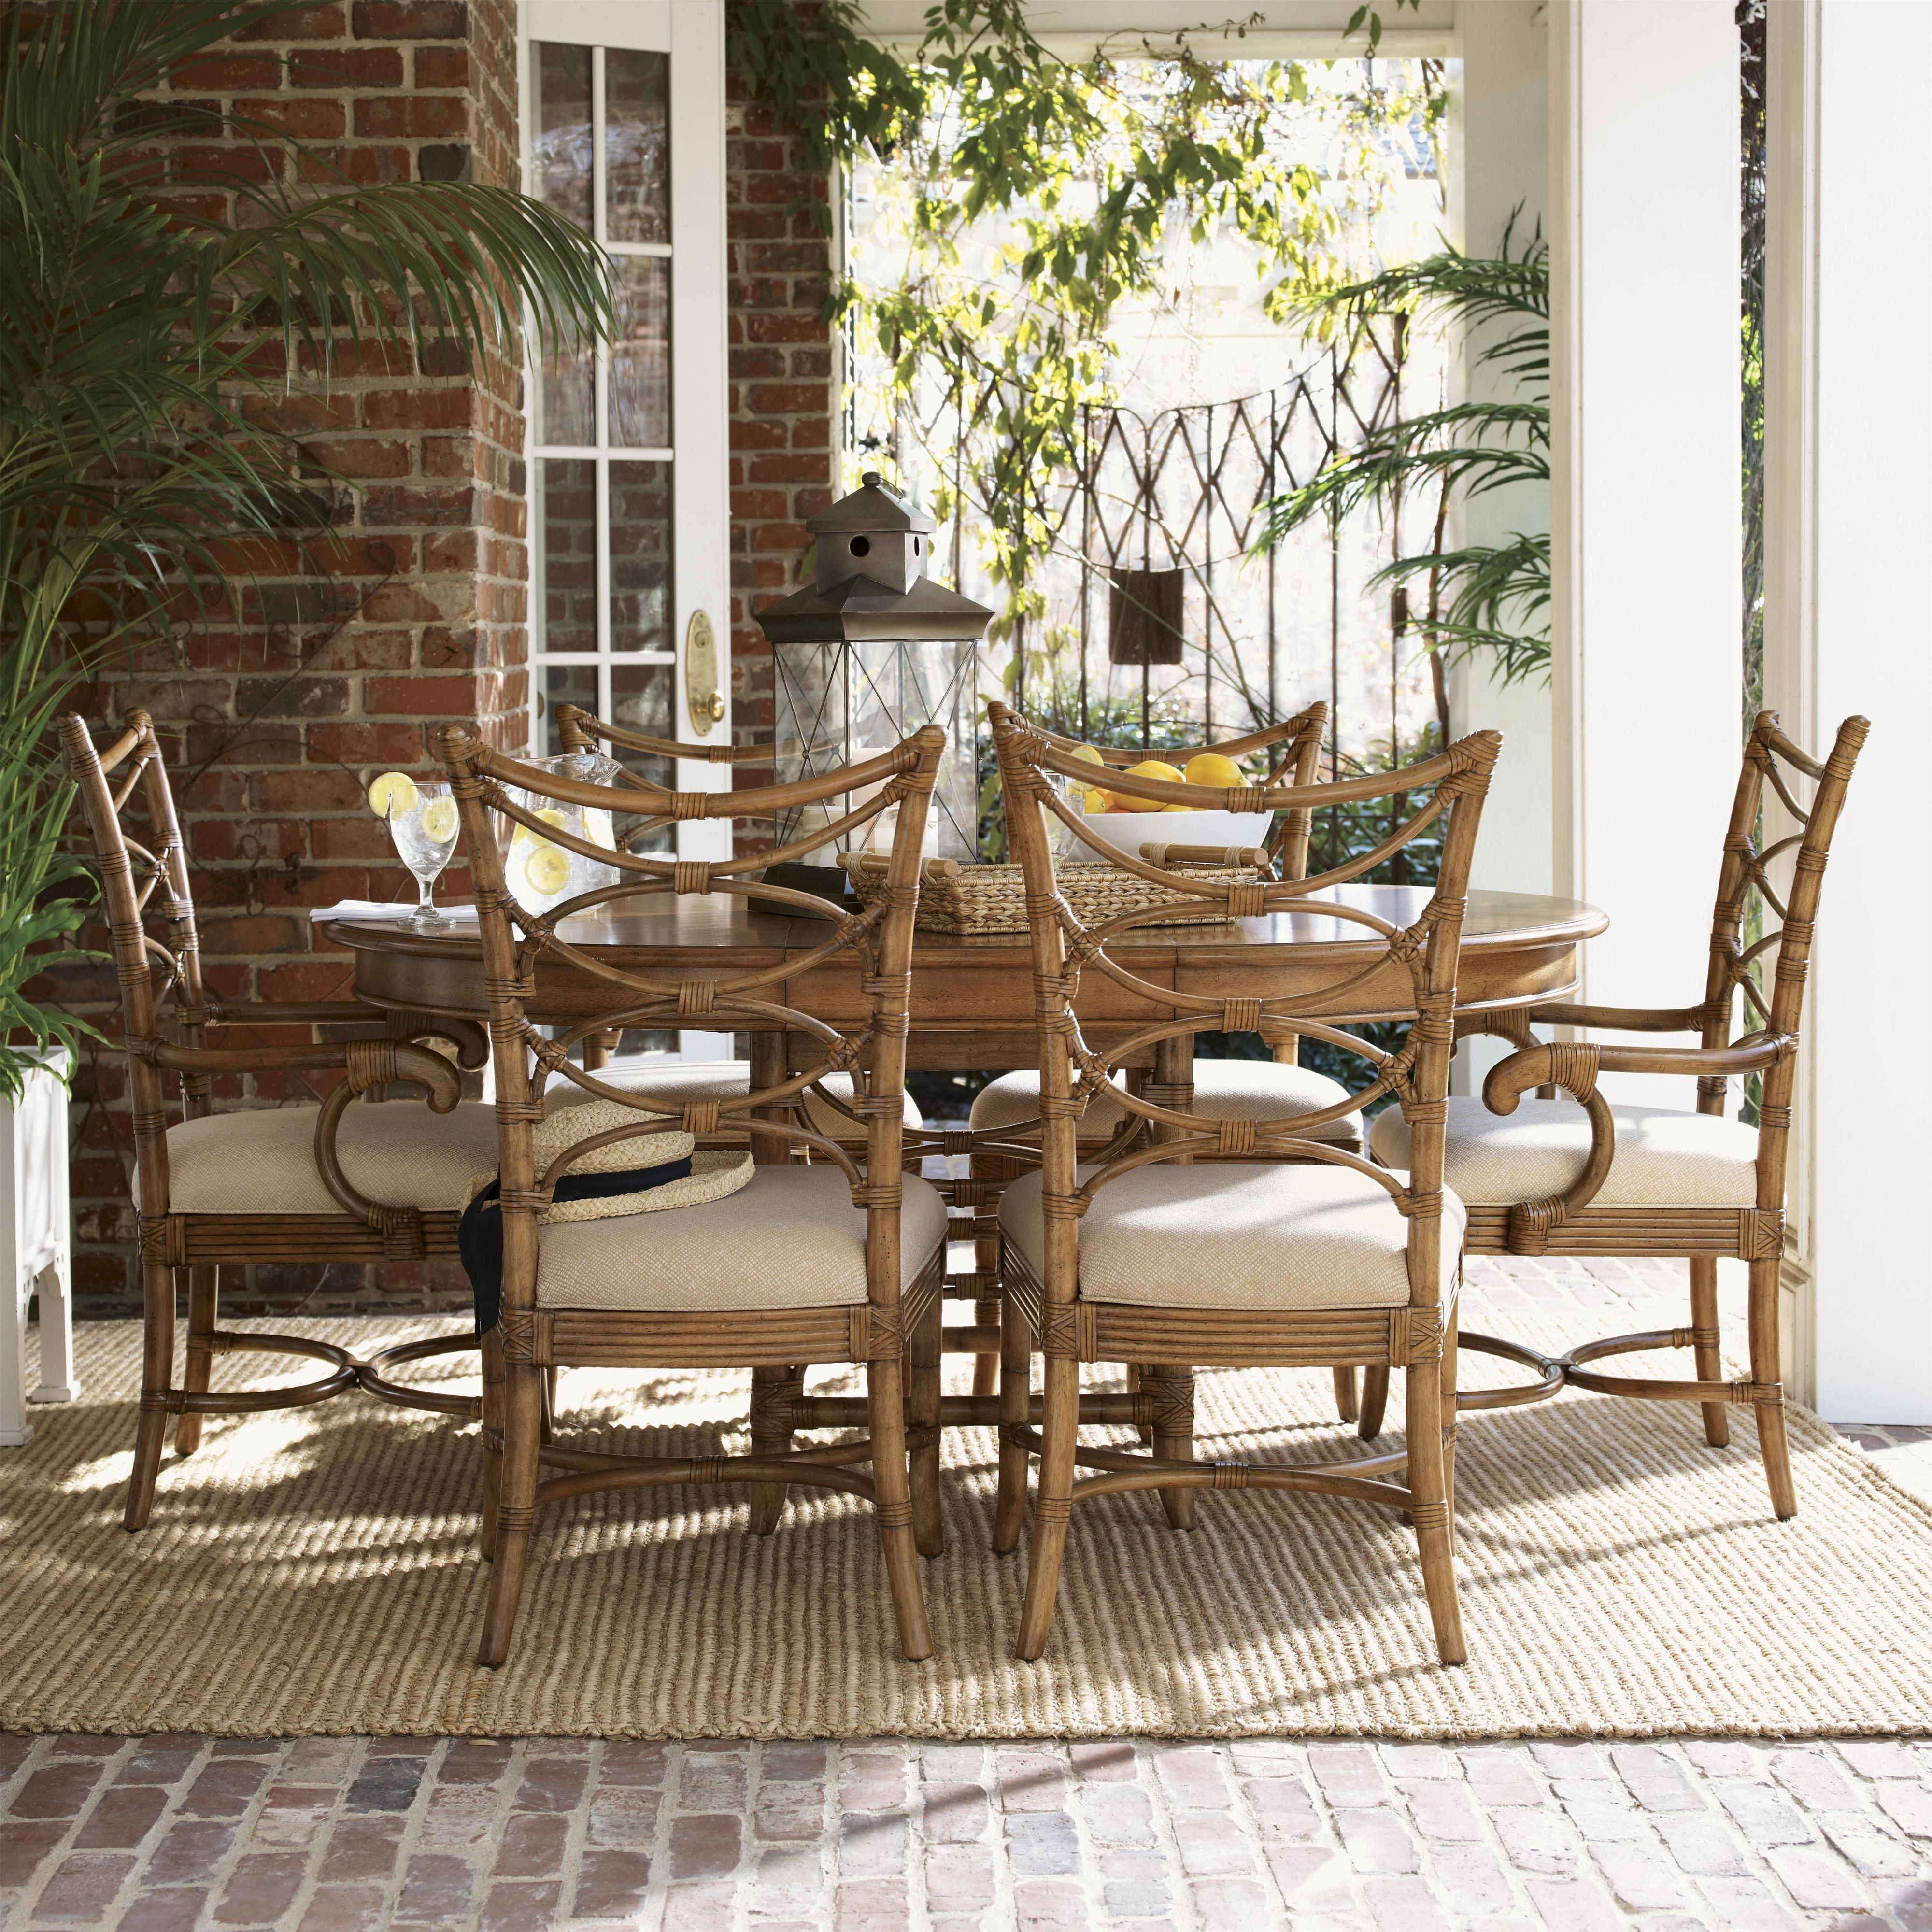 Beach Dining Room Sets: I Like The Idea Of Having The Round Table In The Dining